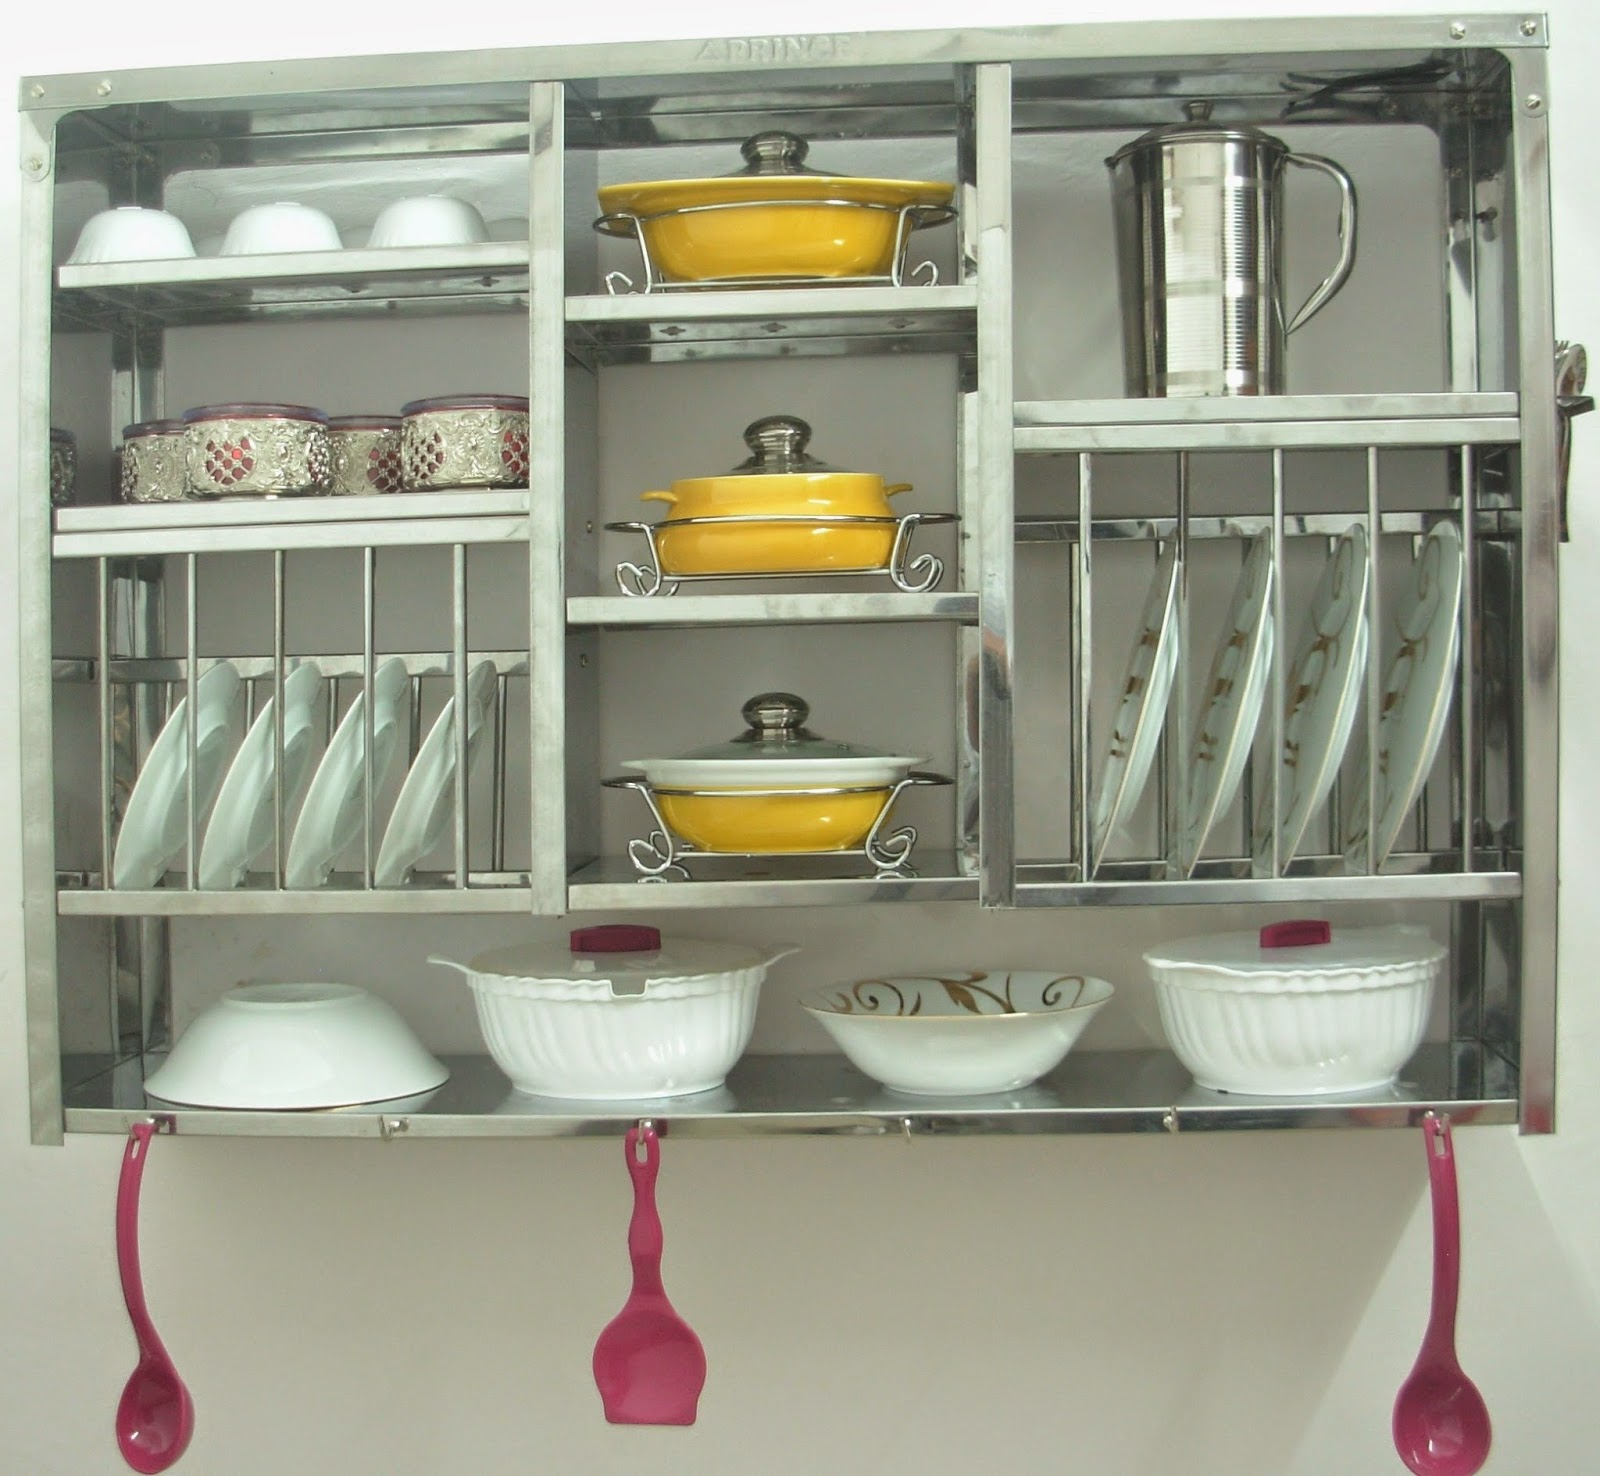 Wall mounted plate racks for kitchens - Dish Dryer Display Rack Stainless Steel Wall Hanging